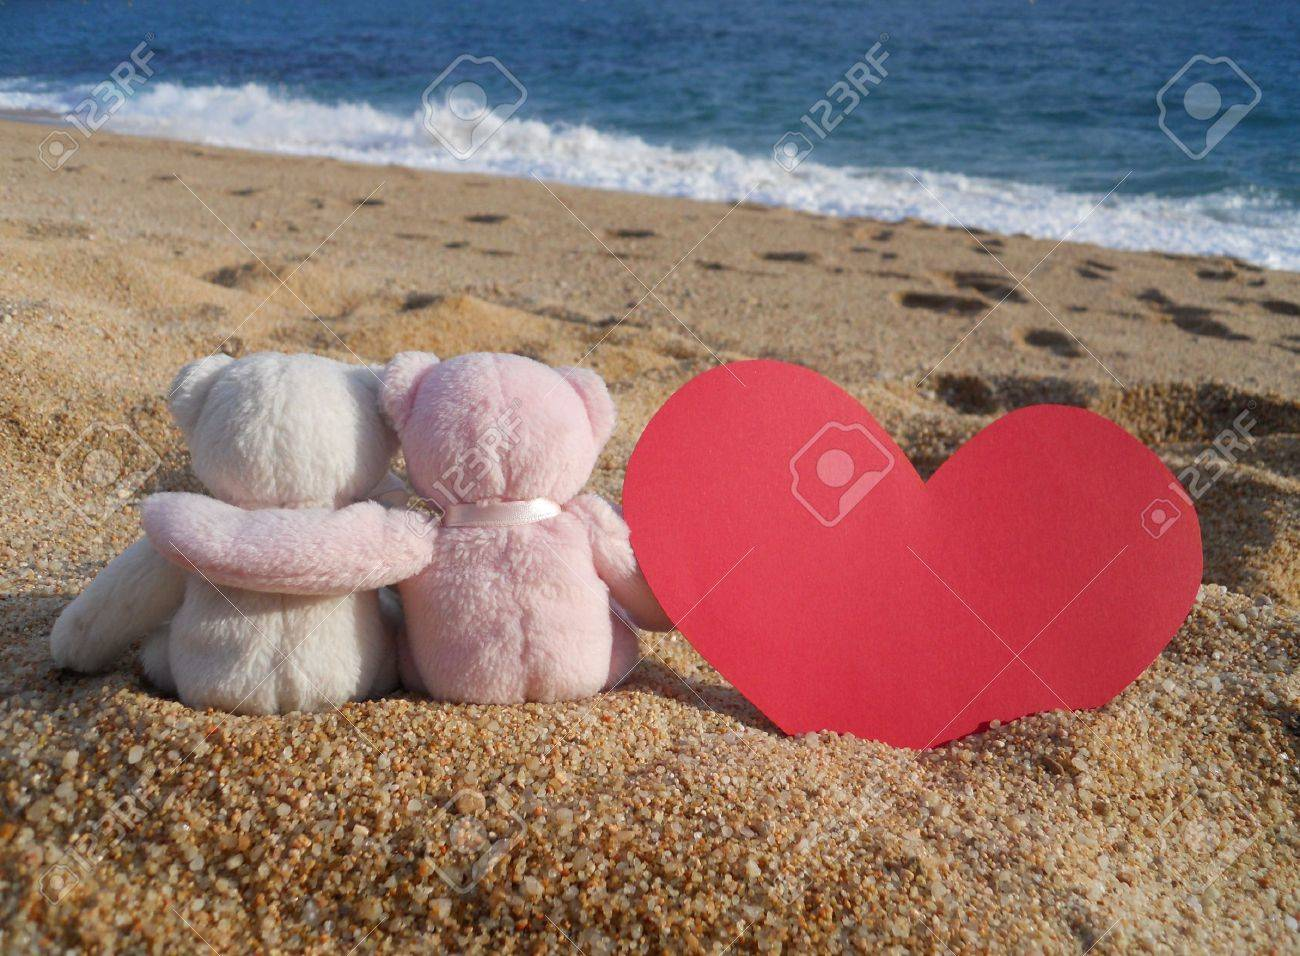 teddy bears romance (white and pink stuffed animal teddy bears toys with red heart sitting on the beach) Stock Photo - 8879409